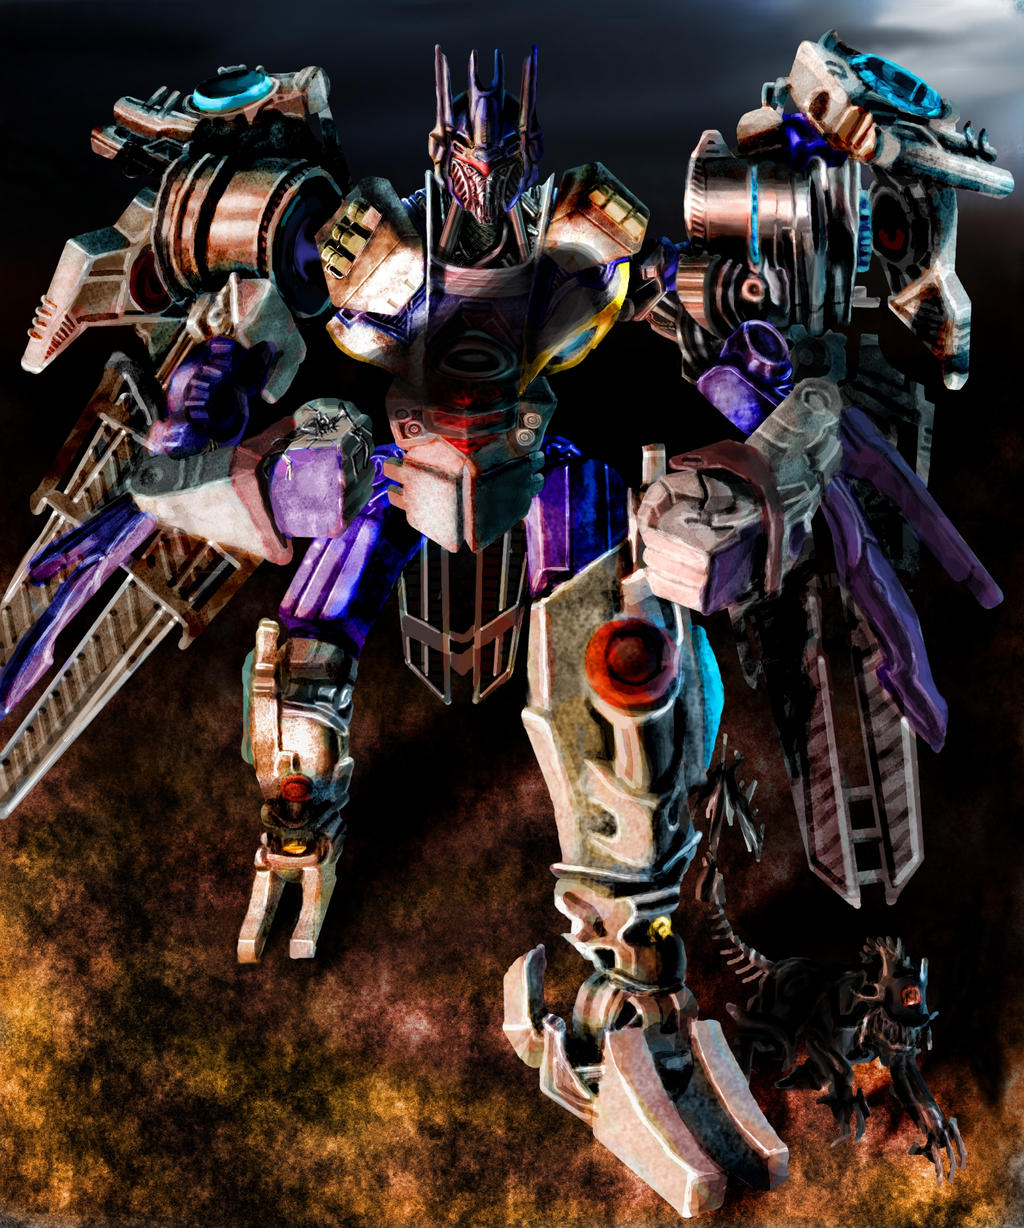 ROTF Soundwave and Ravage by liliwen